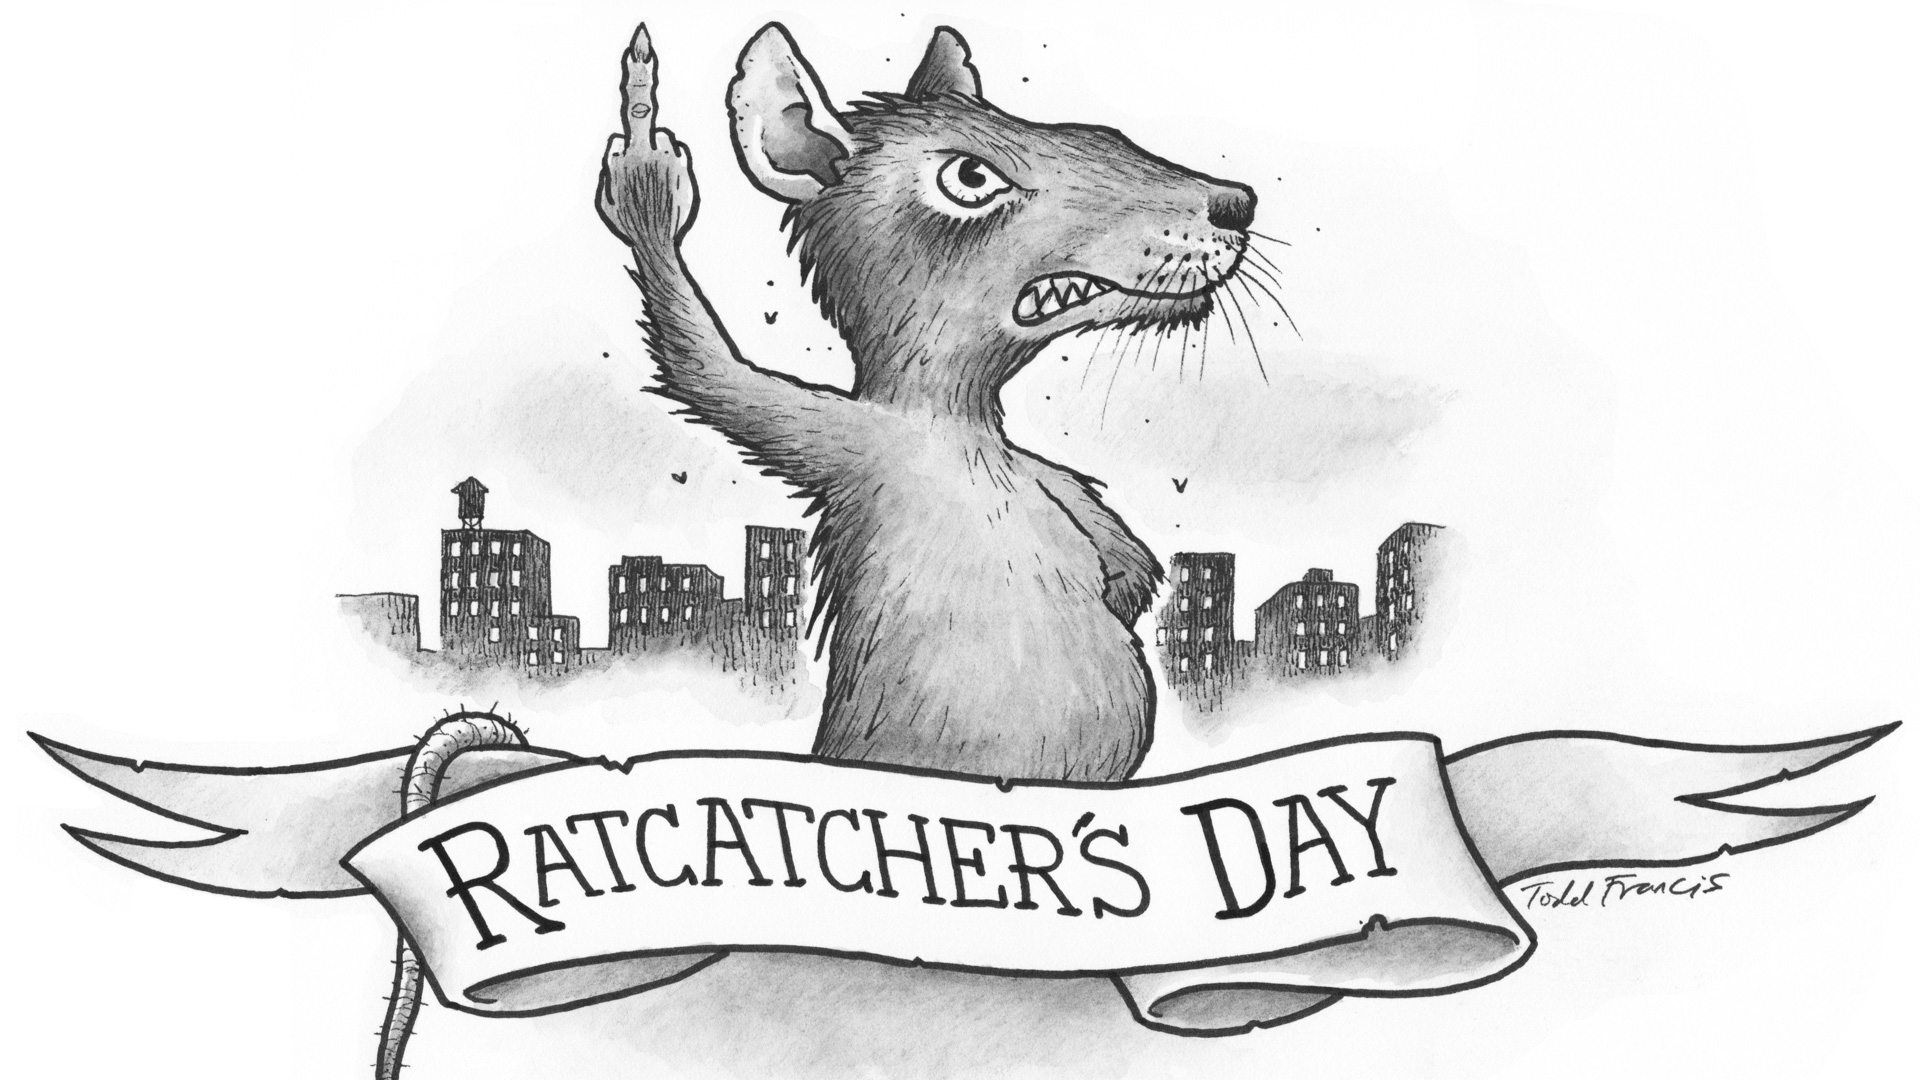 Happy Ratcatchers Day